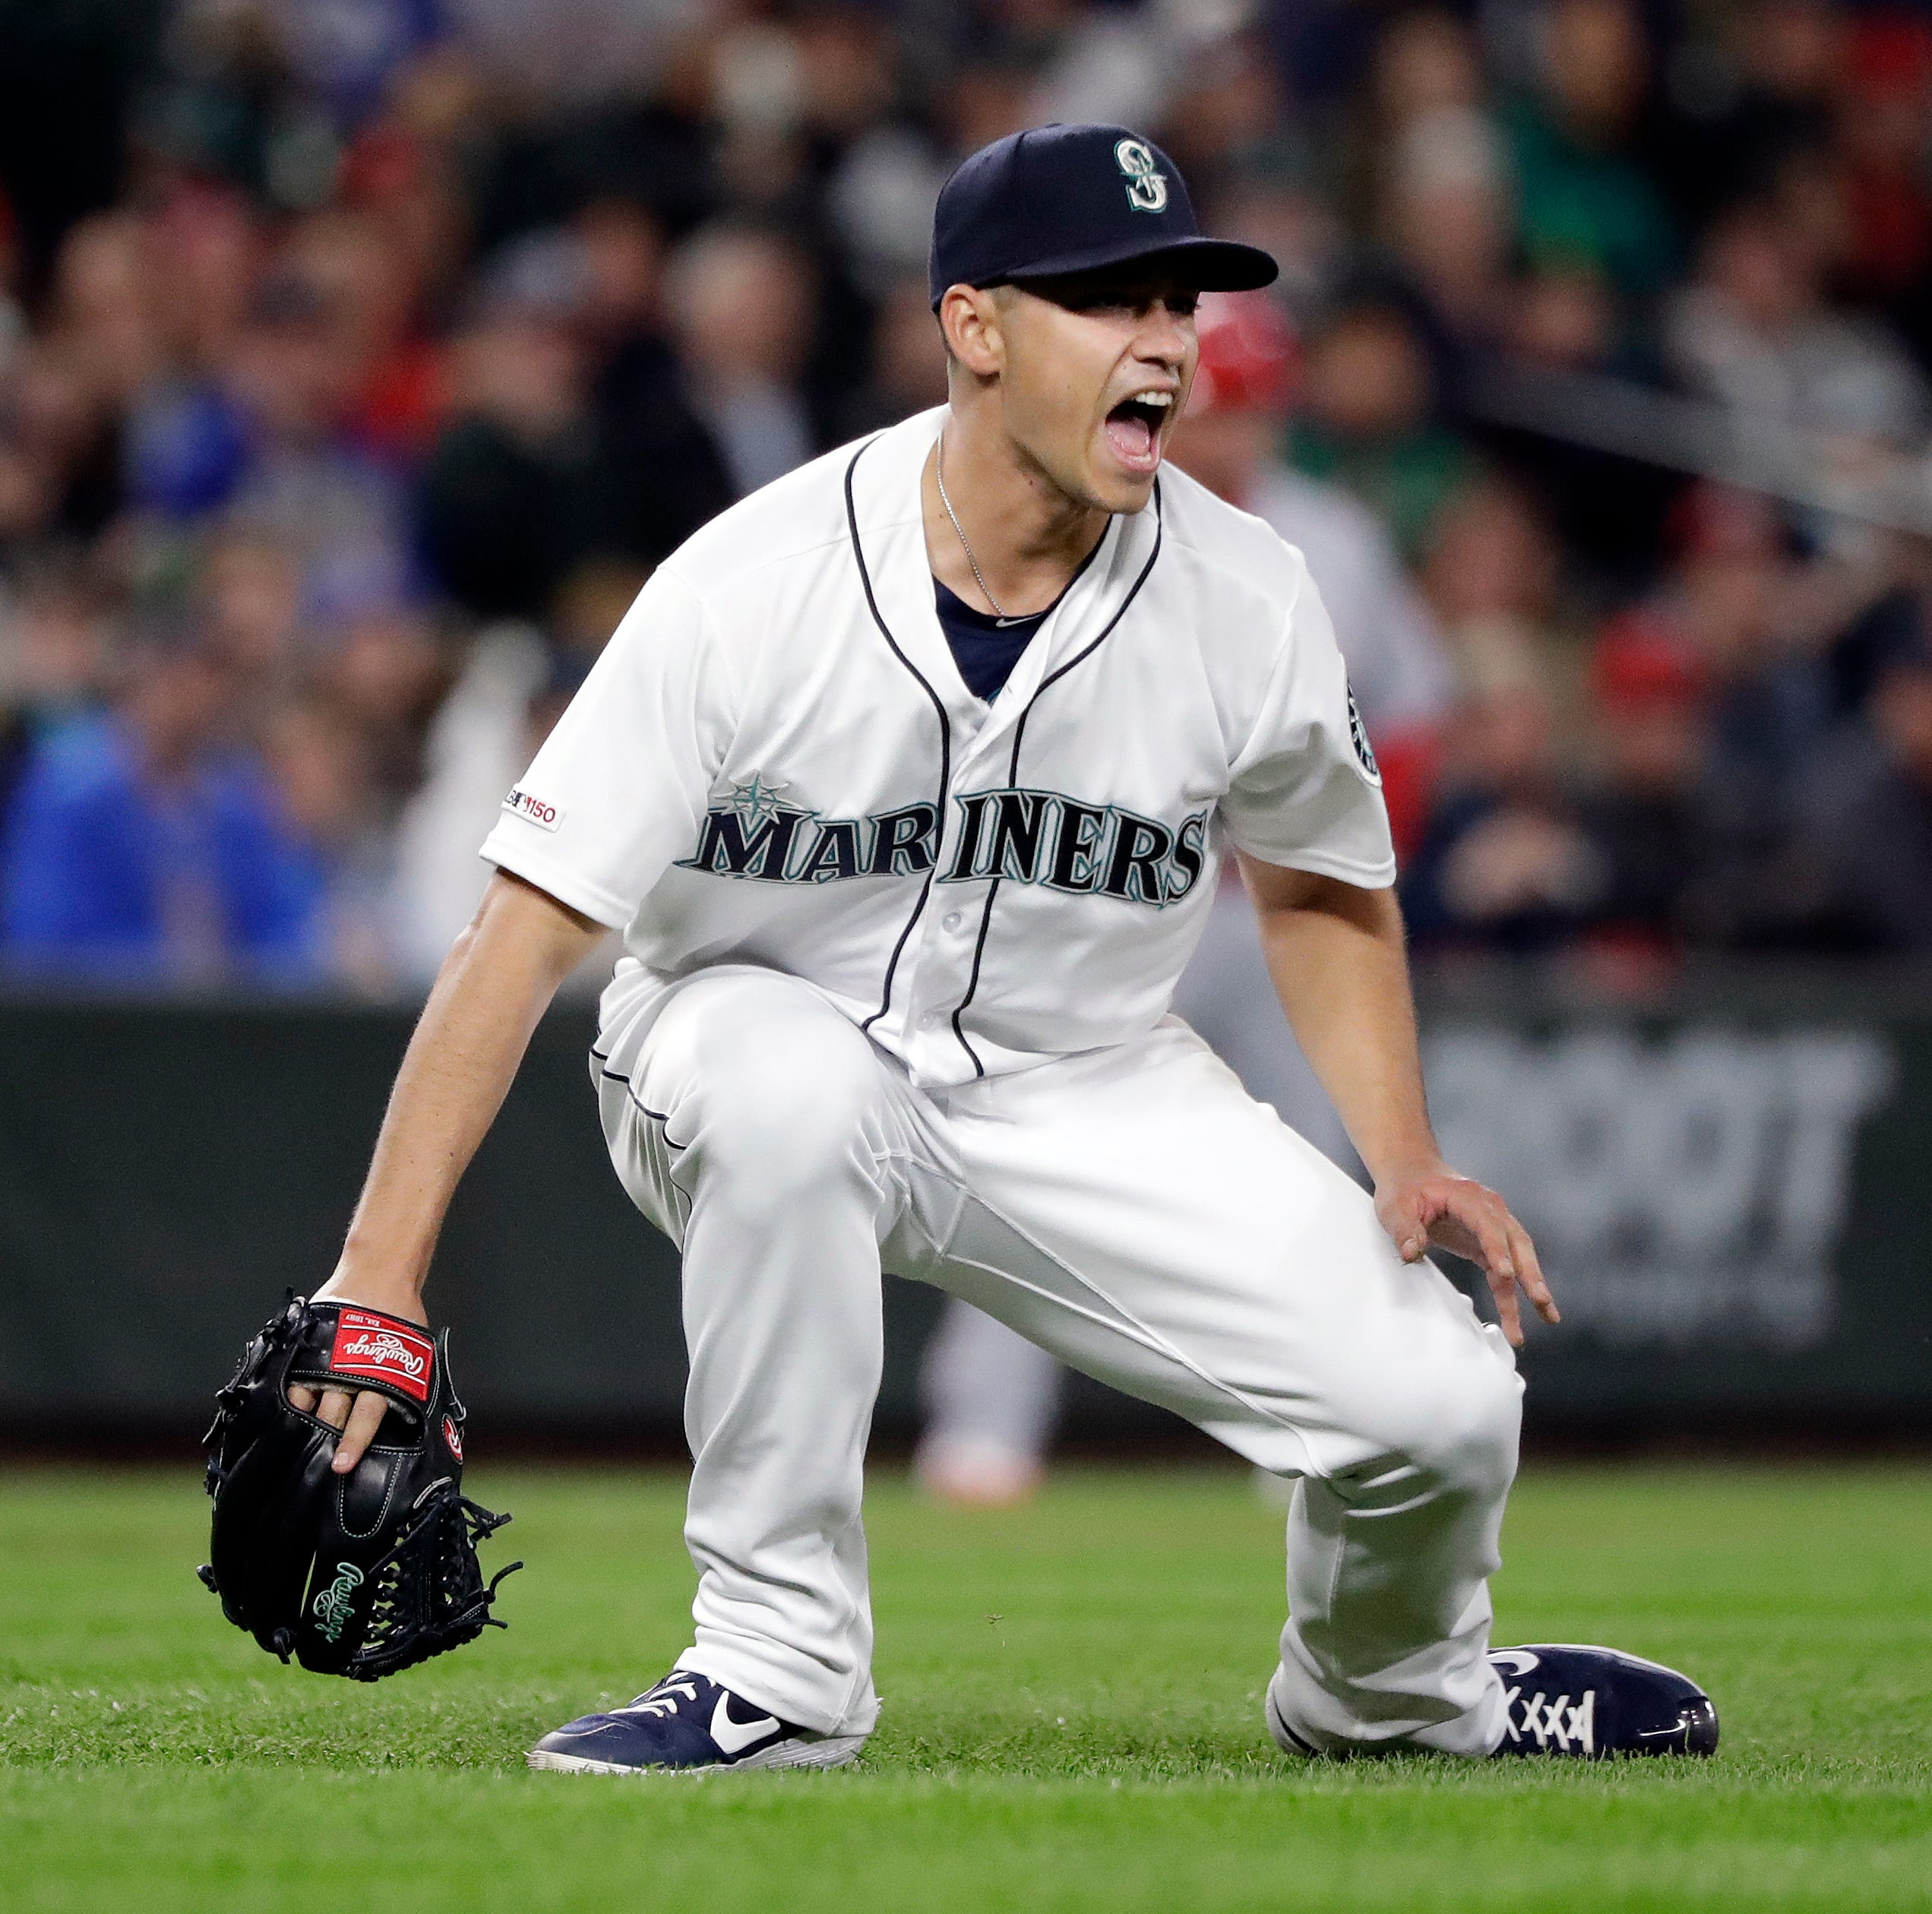 Gonzales pitches into 9th, Mariners 7-1 for first time